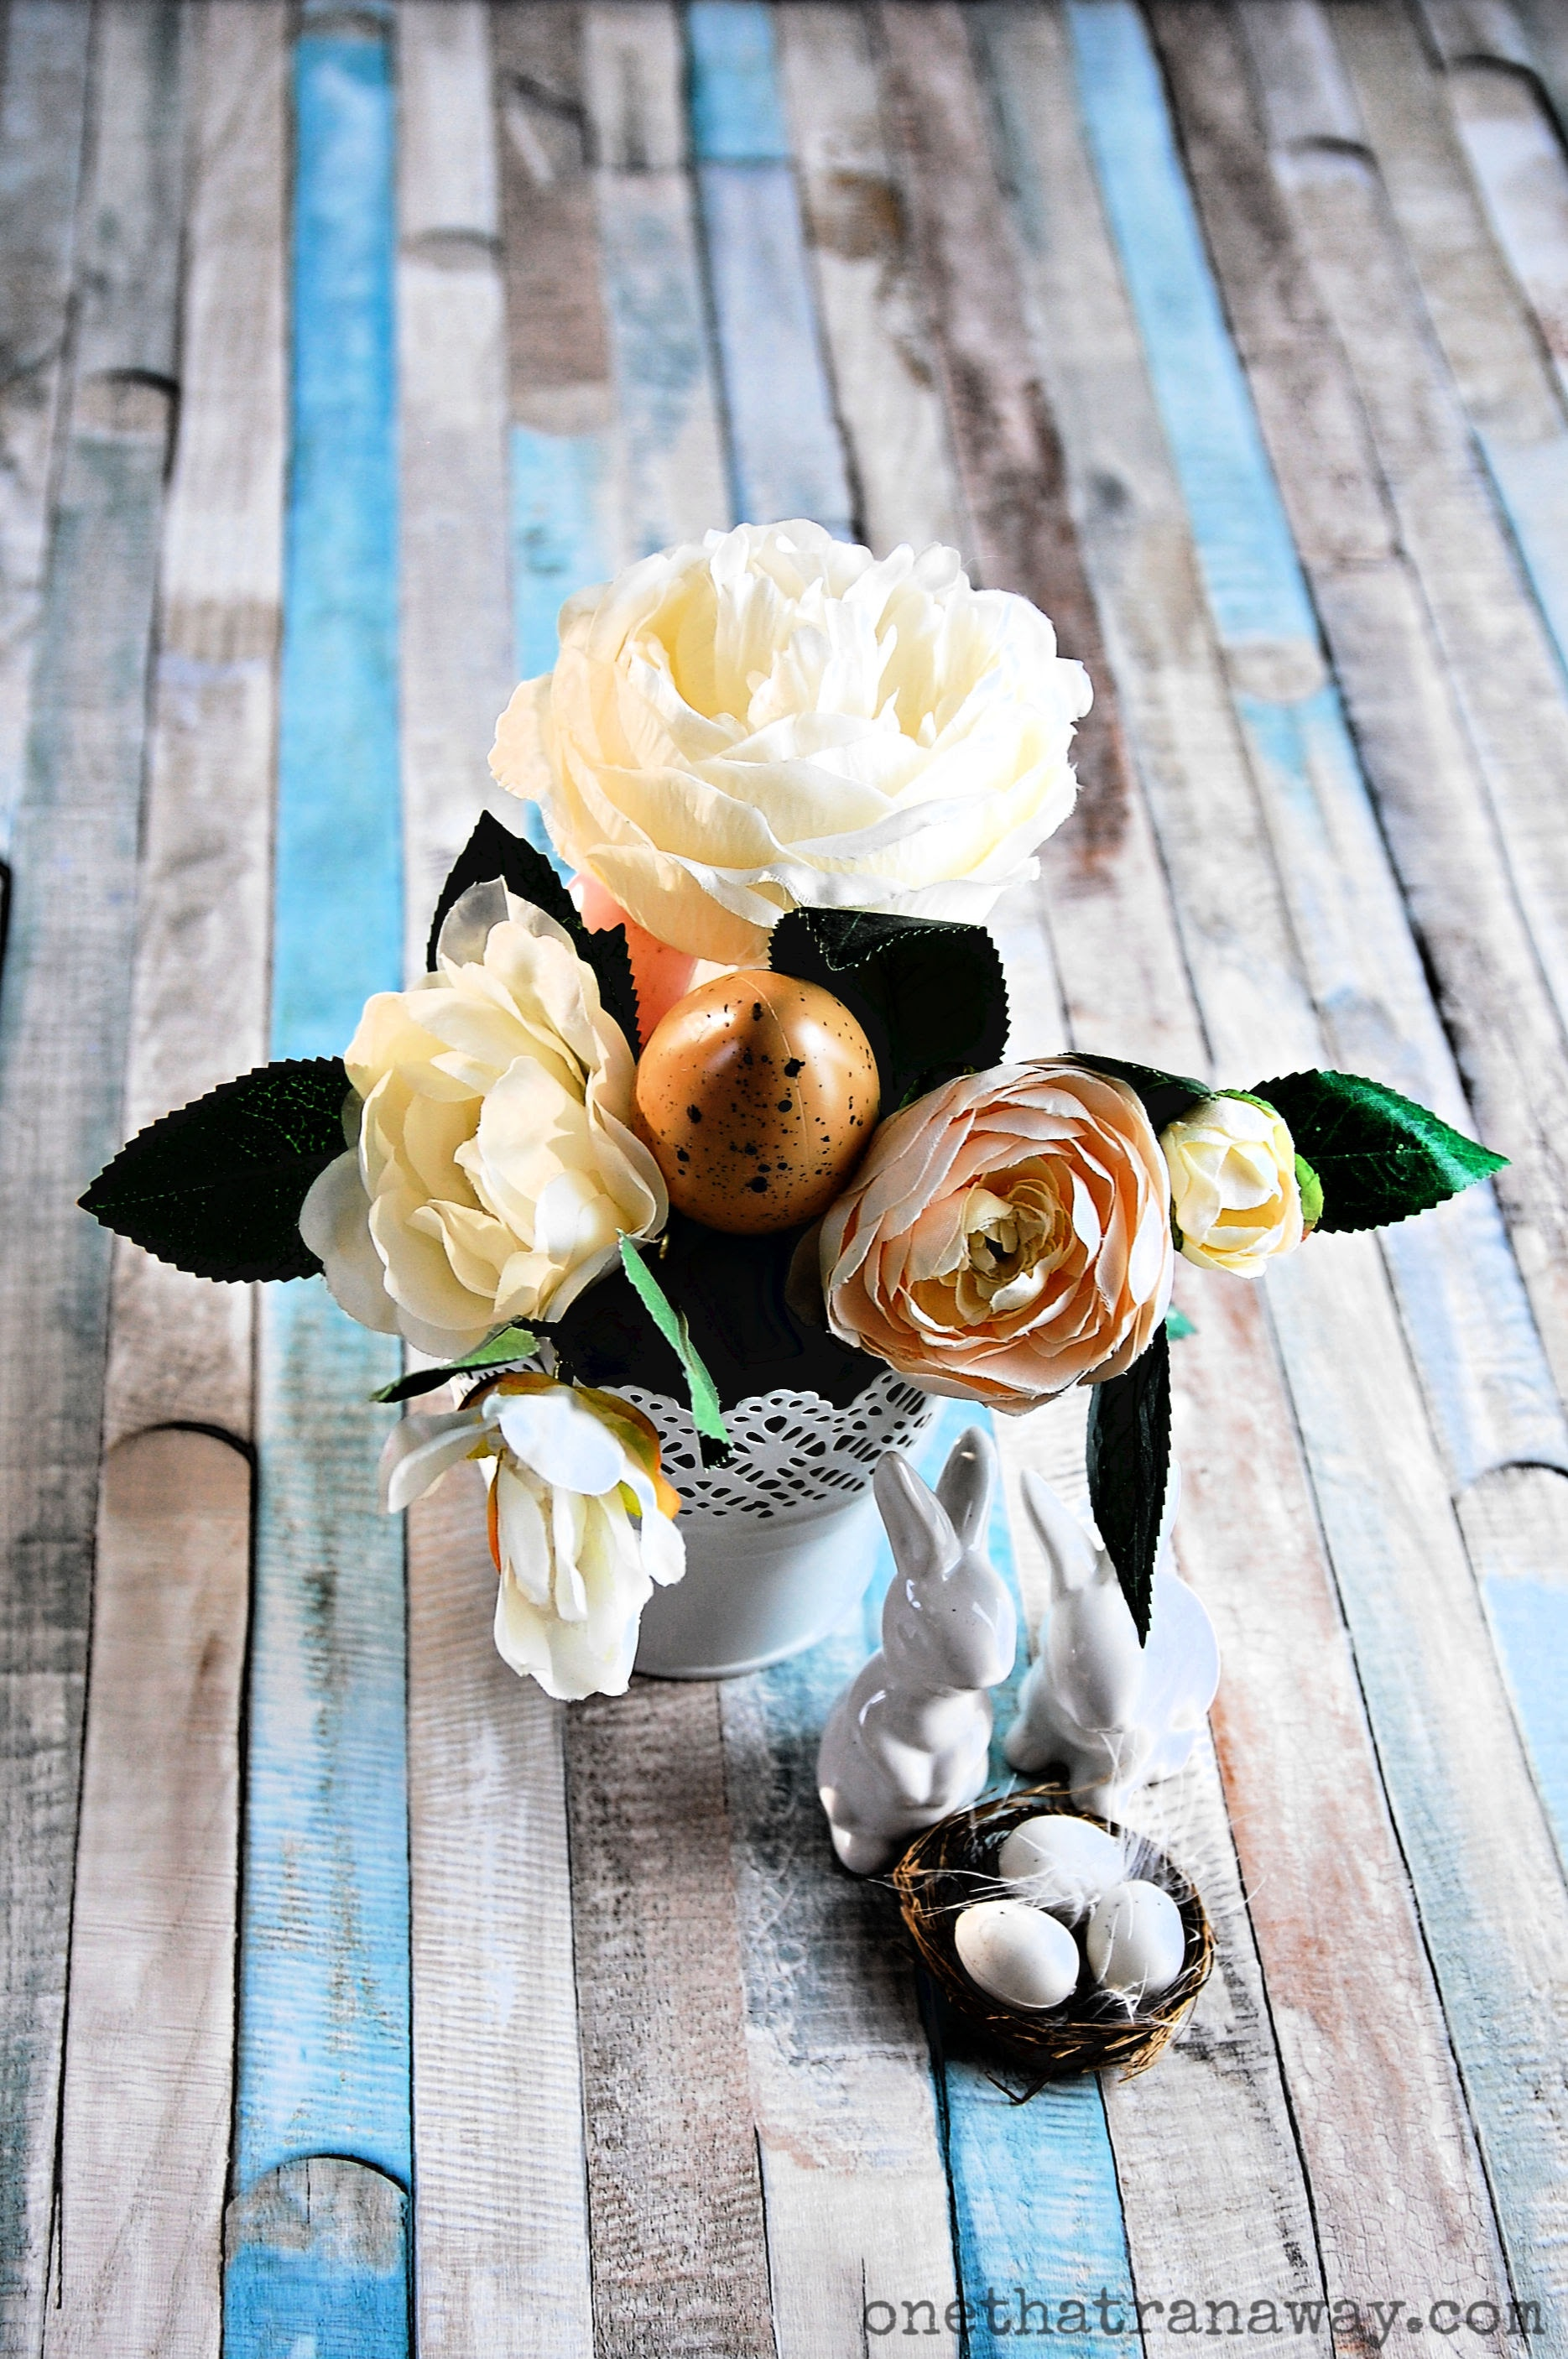 flower bouquet with easter eggs and porcelain easter bunnies on a wooden surface